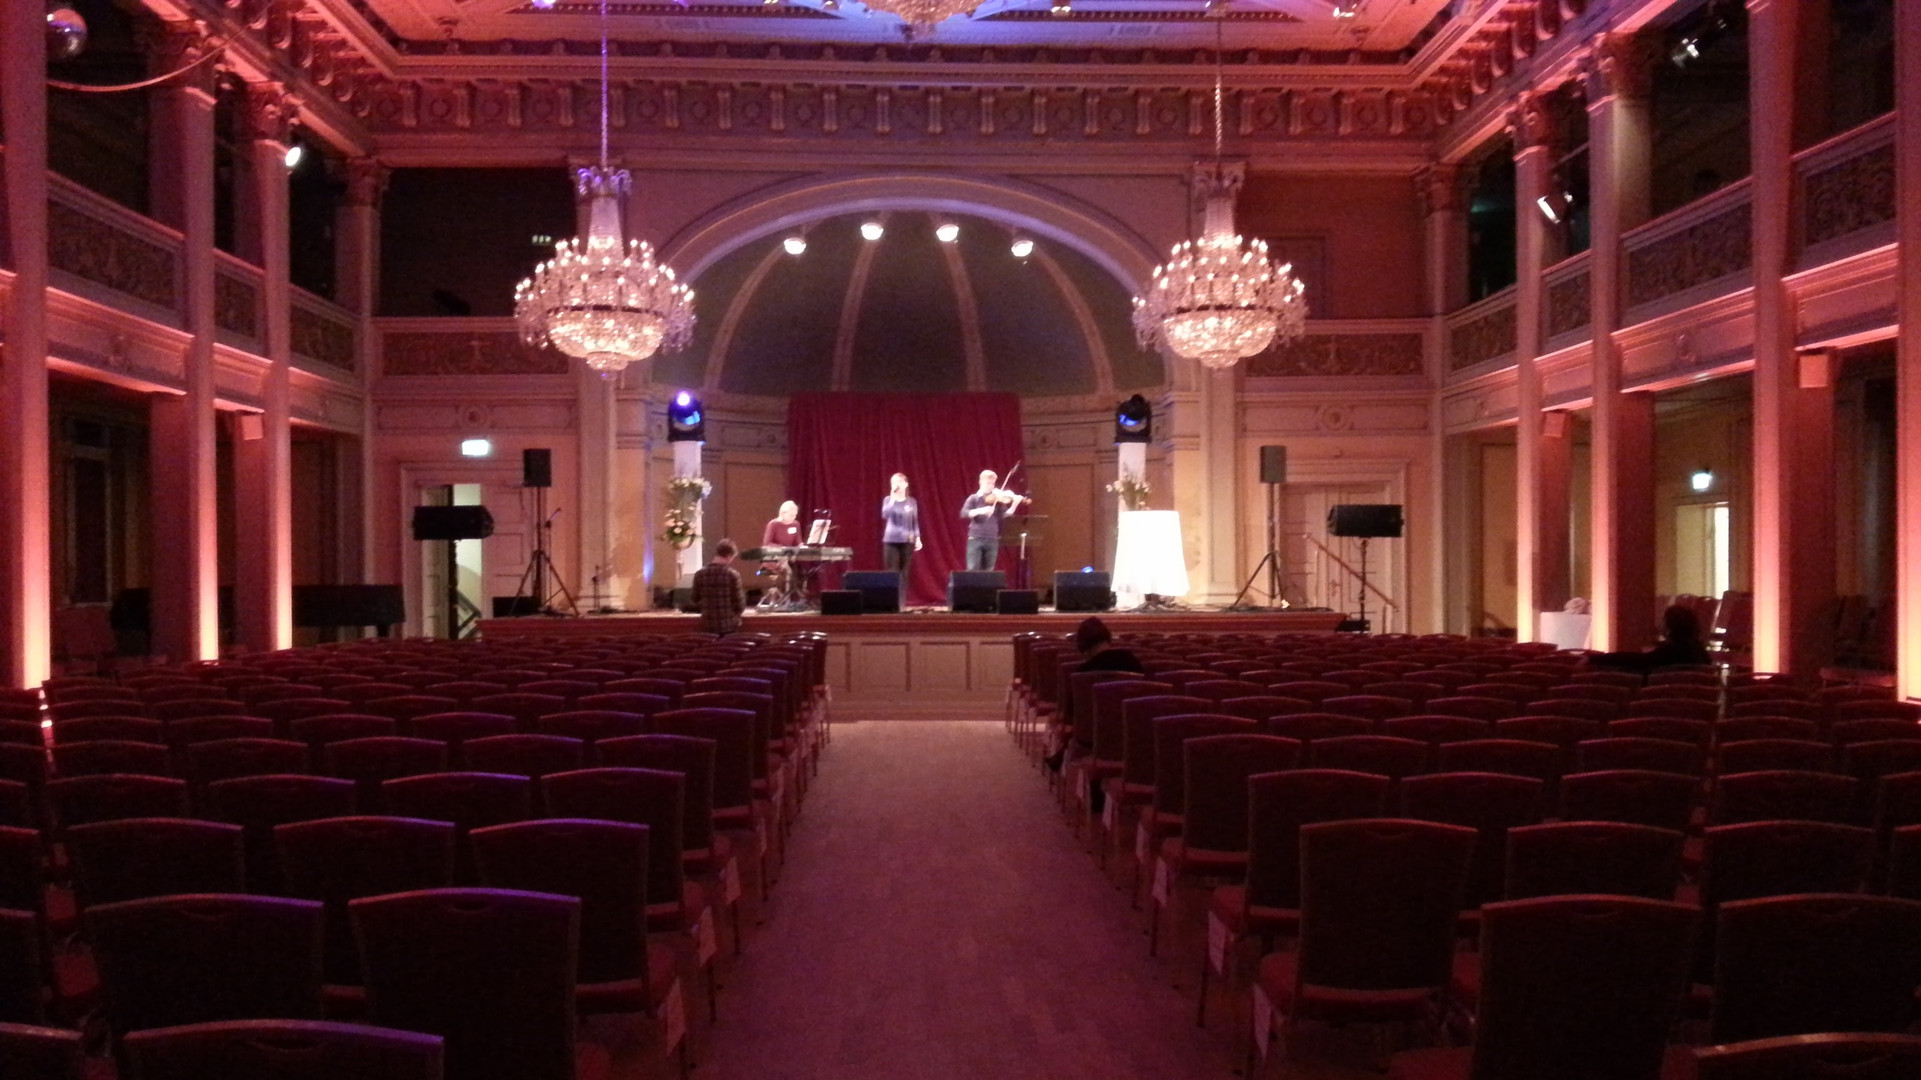 Soundcheck before concert in connection with nobel Peace Prize 2014.